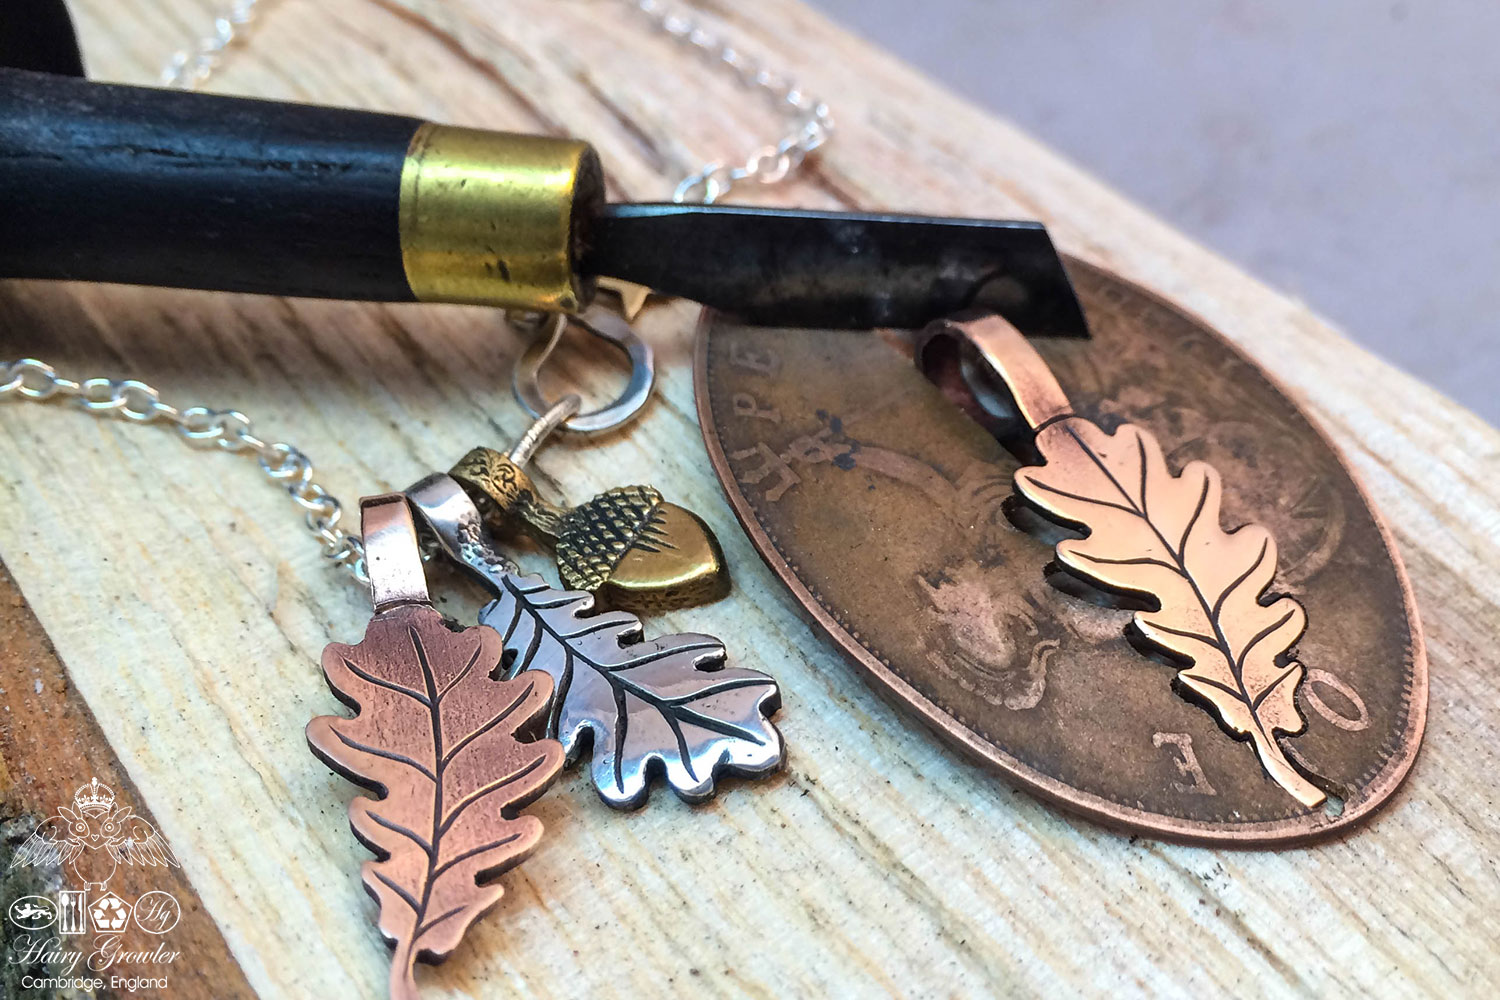 handcrafted copper4 oak leaf charm for a tree sculpture, necklace or bracelet